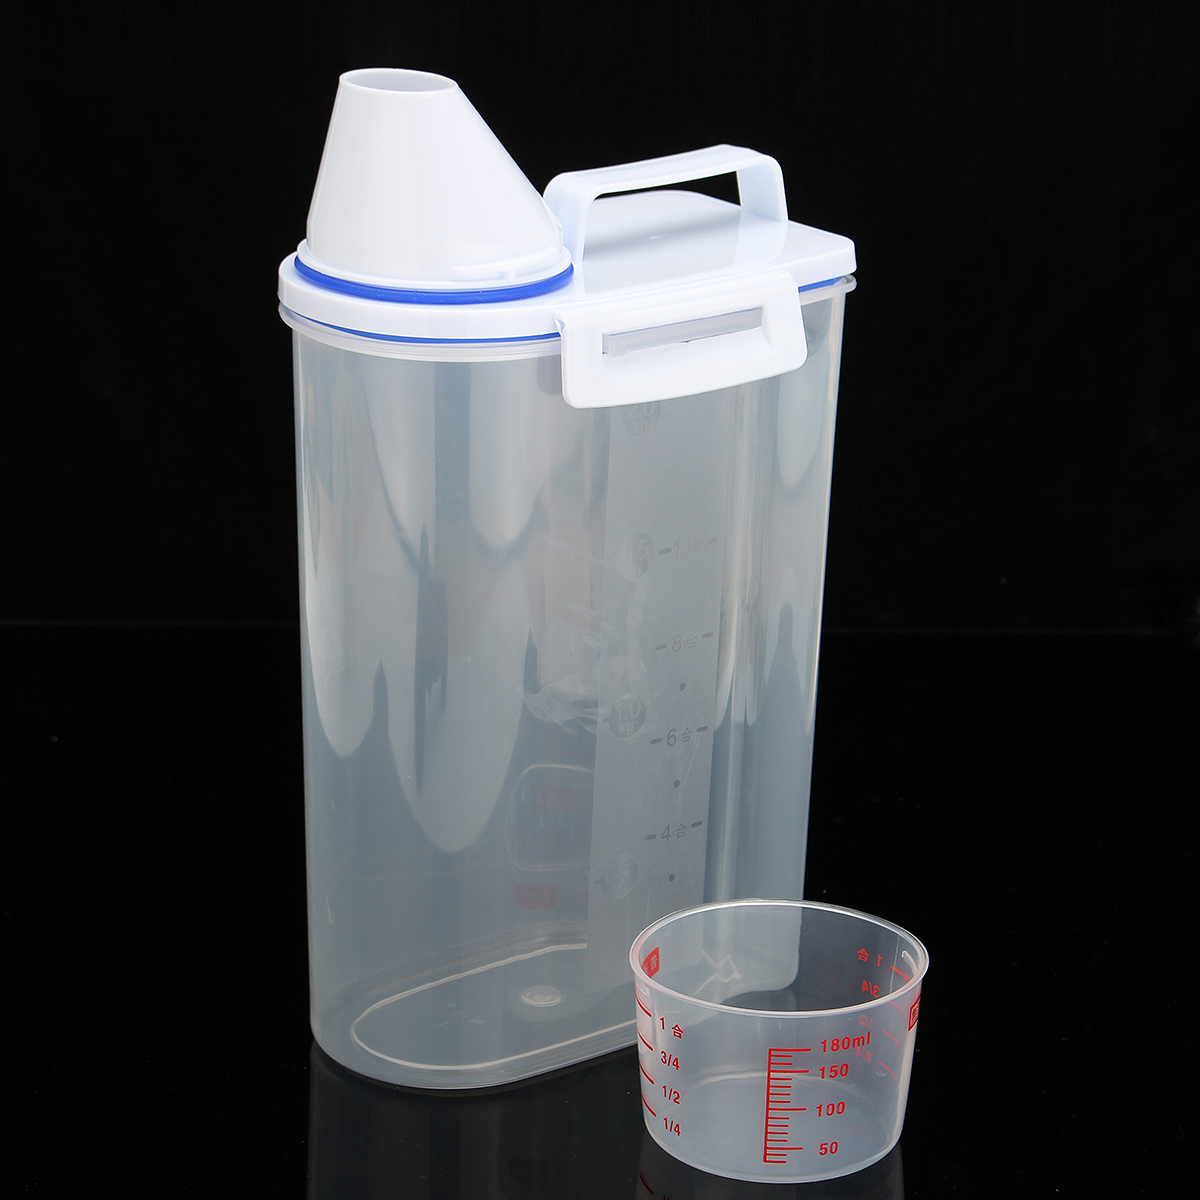 Grain Storage Container With Measuring Cup